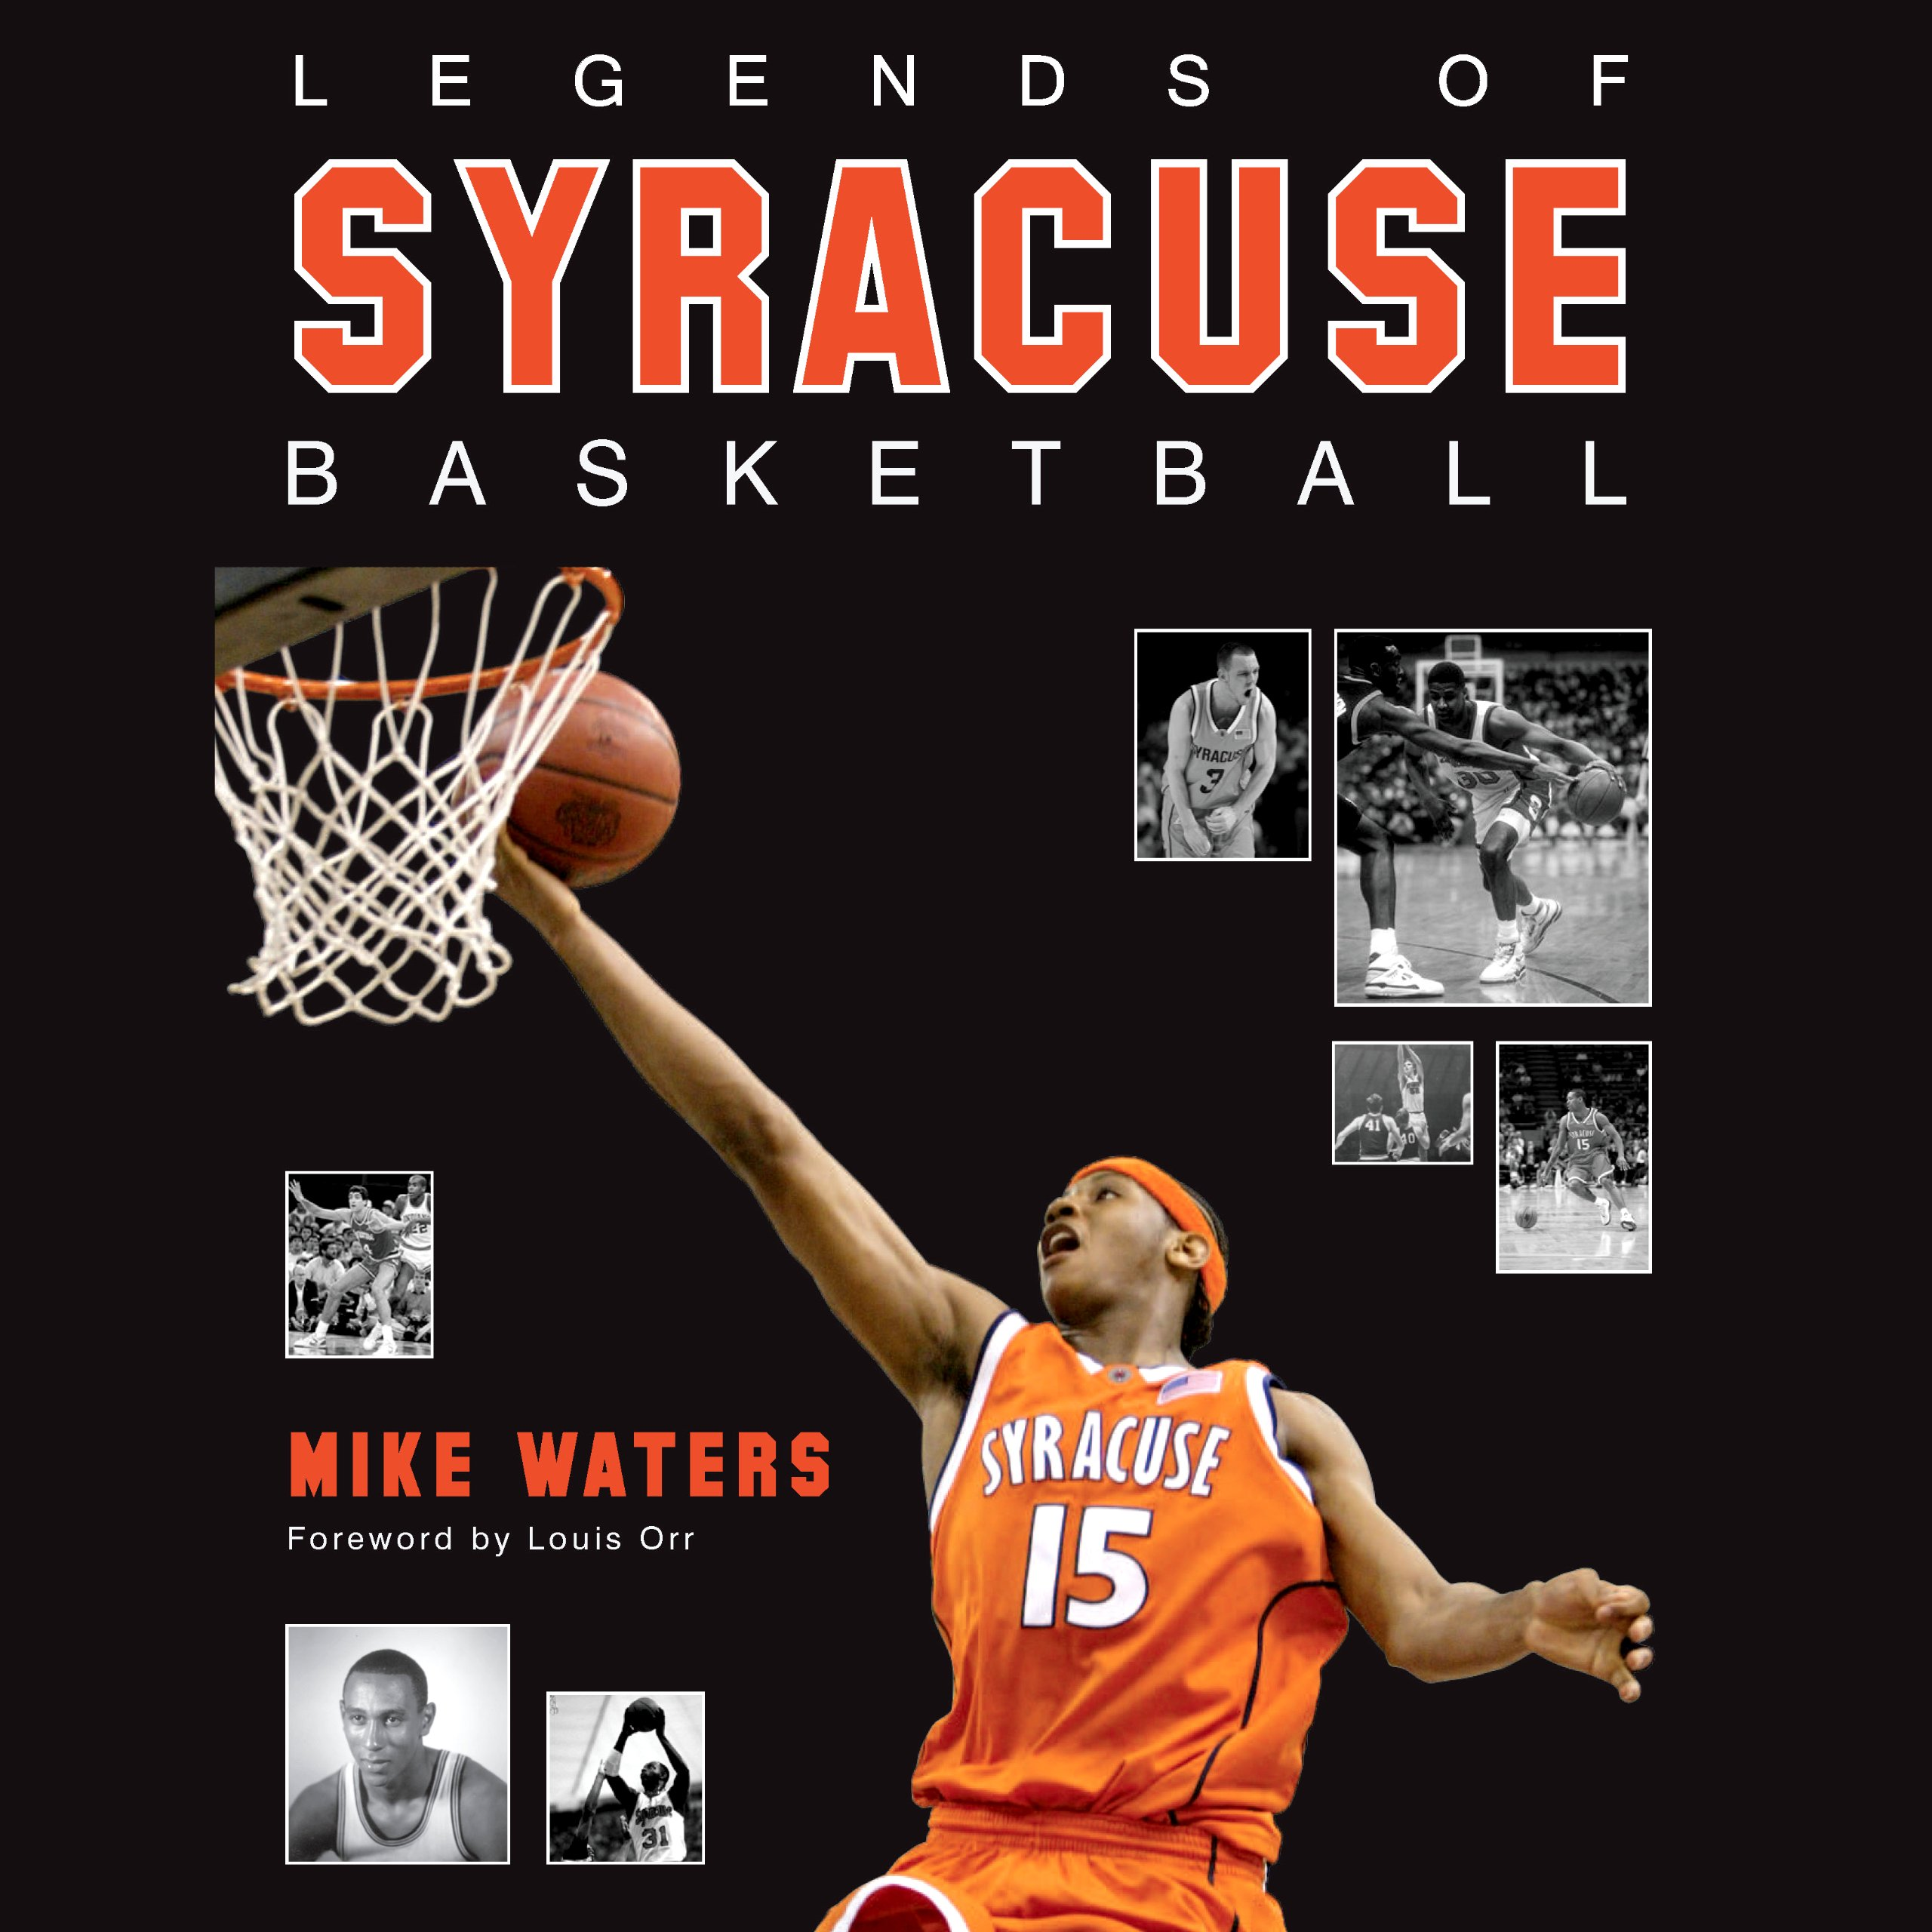 Legends of Syracuse Basketball: Carmelo Anthony, Rony Seikaly, Derrick Coleman, John Wallace, Jim Boeheim, and Many More!